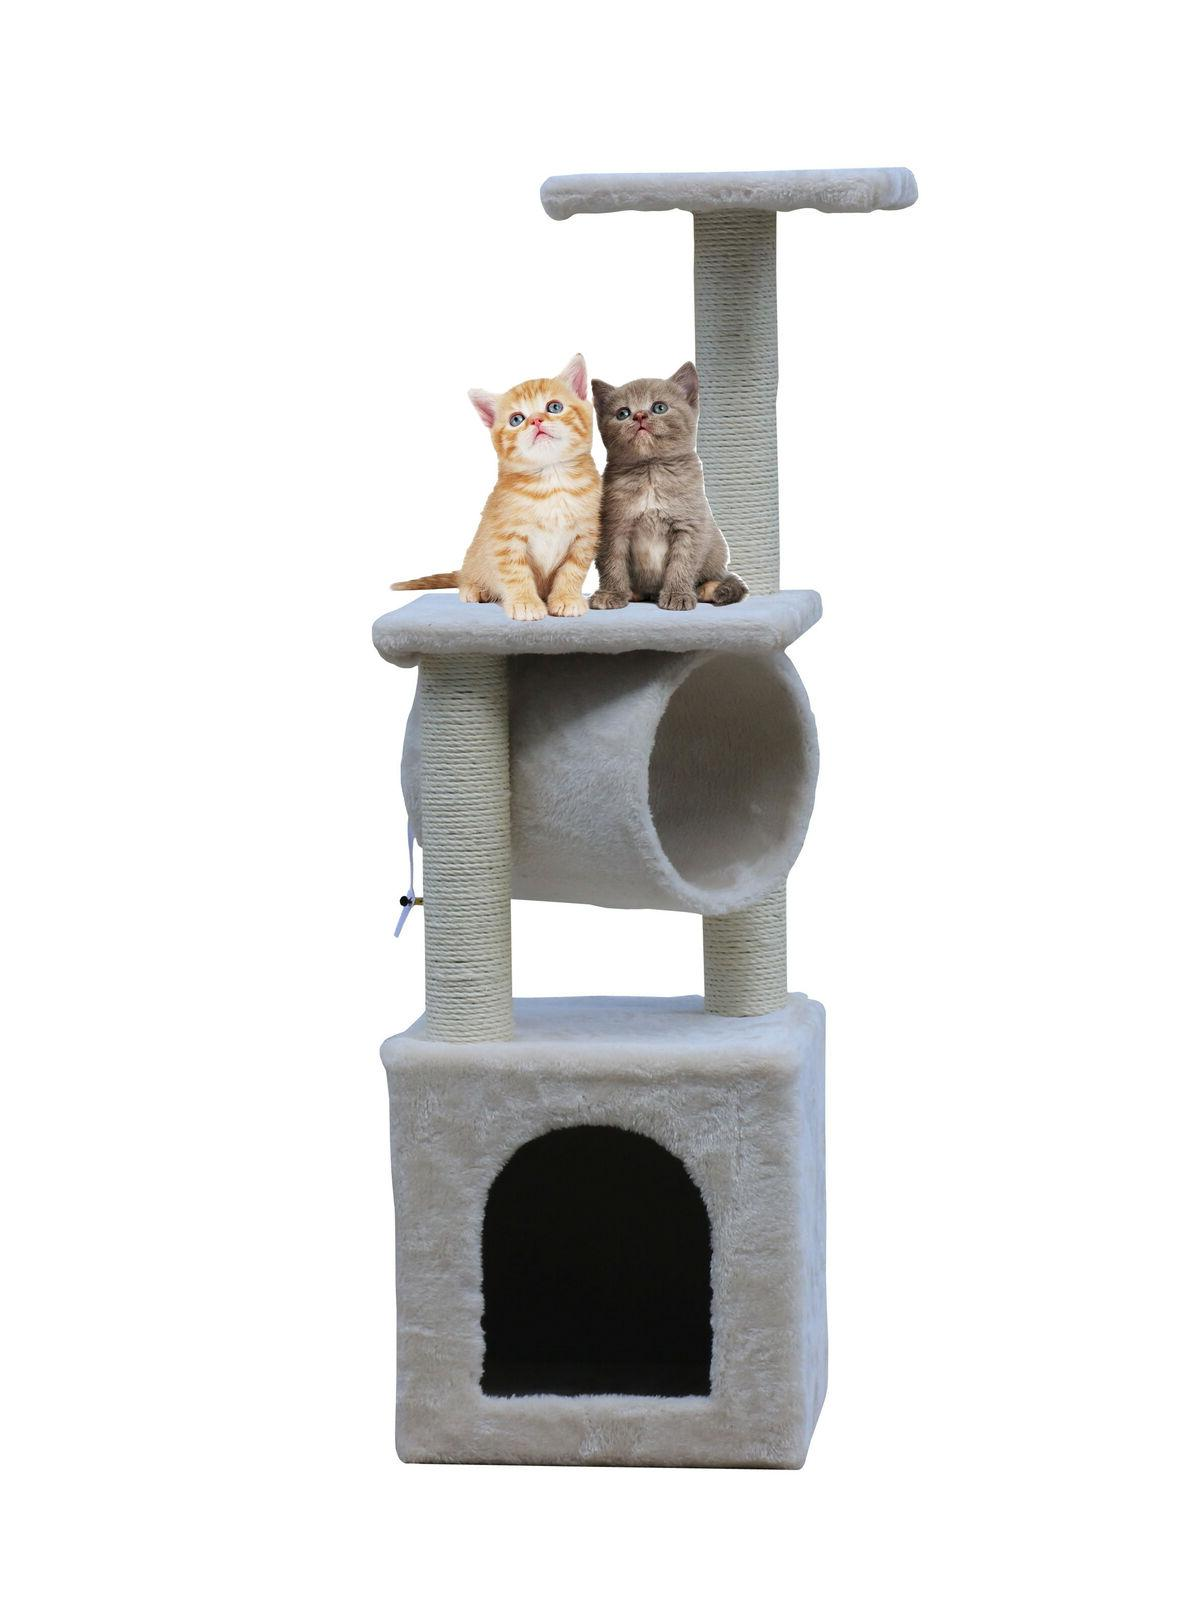 36 cat tree tower condo tunnel scratching